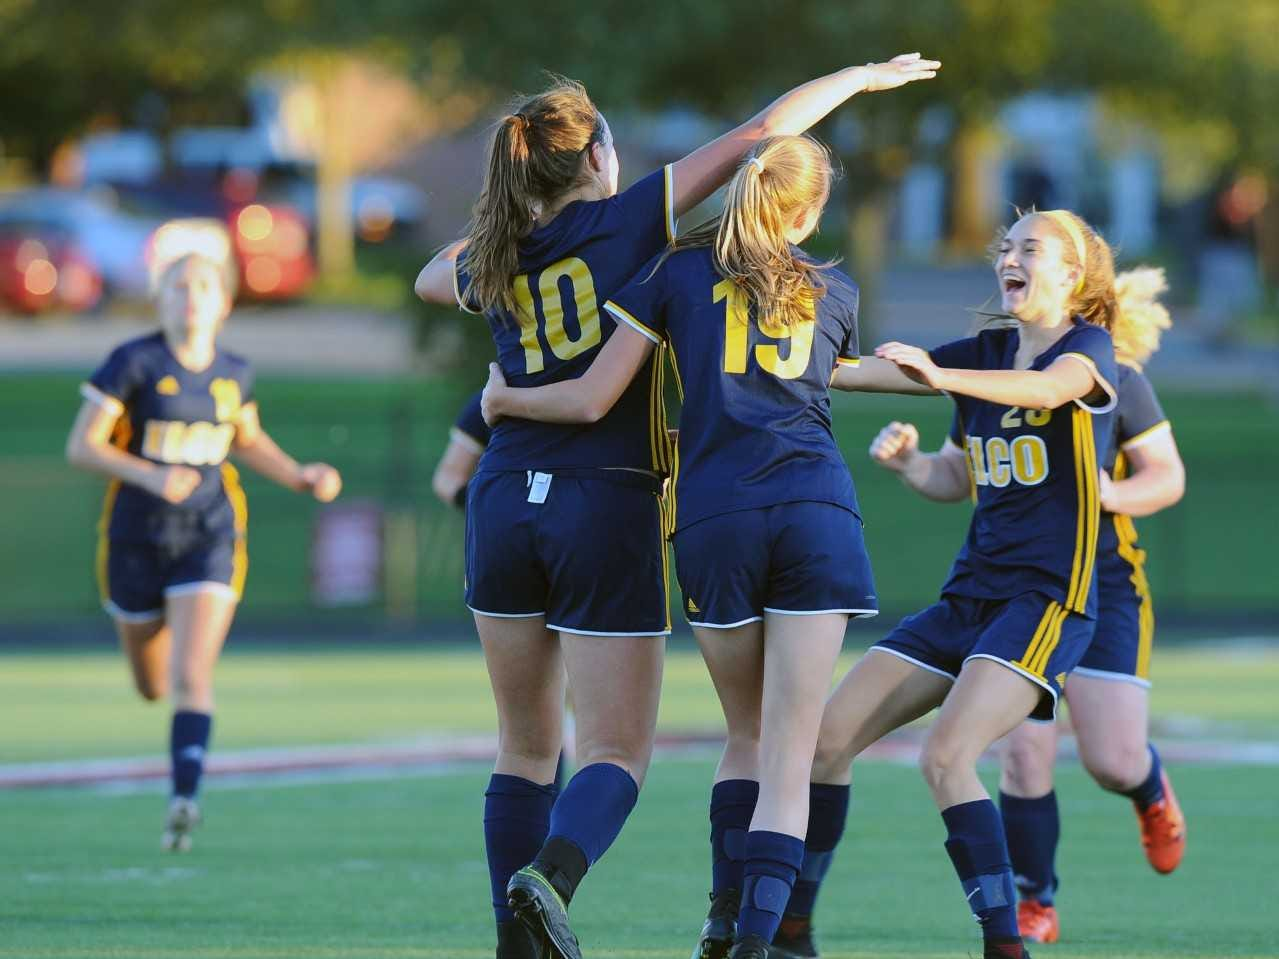 Ryelle Shuey (10) and her teammates celebrate after she scores her second goal of the game to put Elco in the lead 2-1. Photo Jeff Ruppenthal.